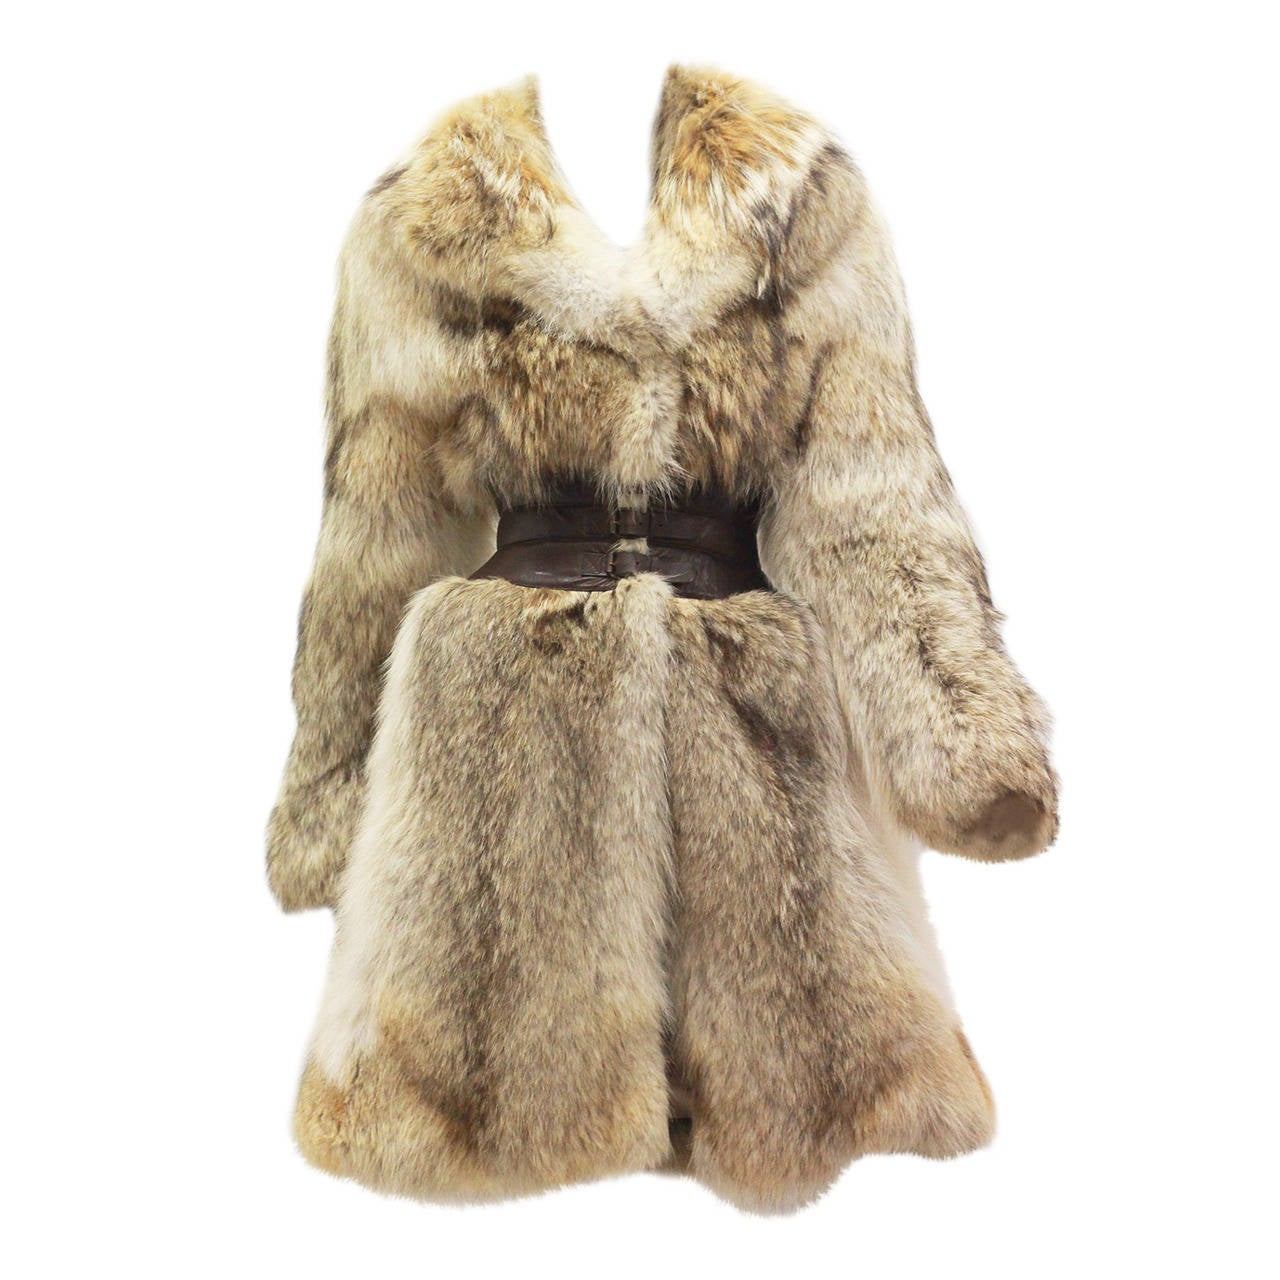 Fine and rare Alexander McQueen Corseted Coyote Fur Coat (Pre-Death) Circa 2006 1